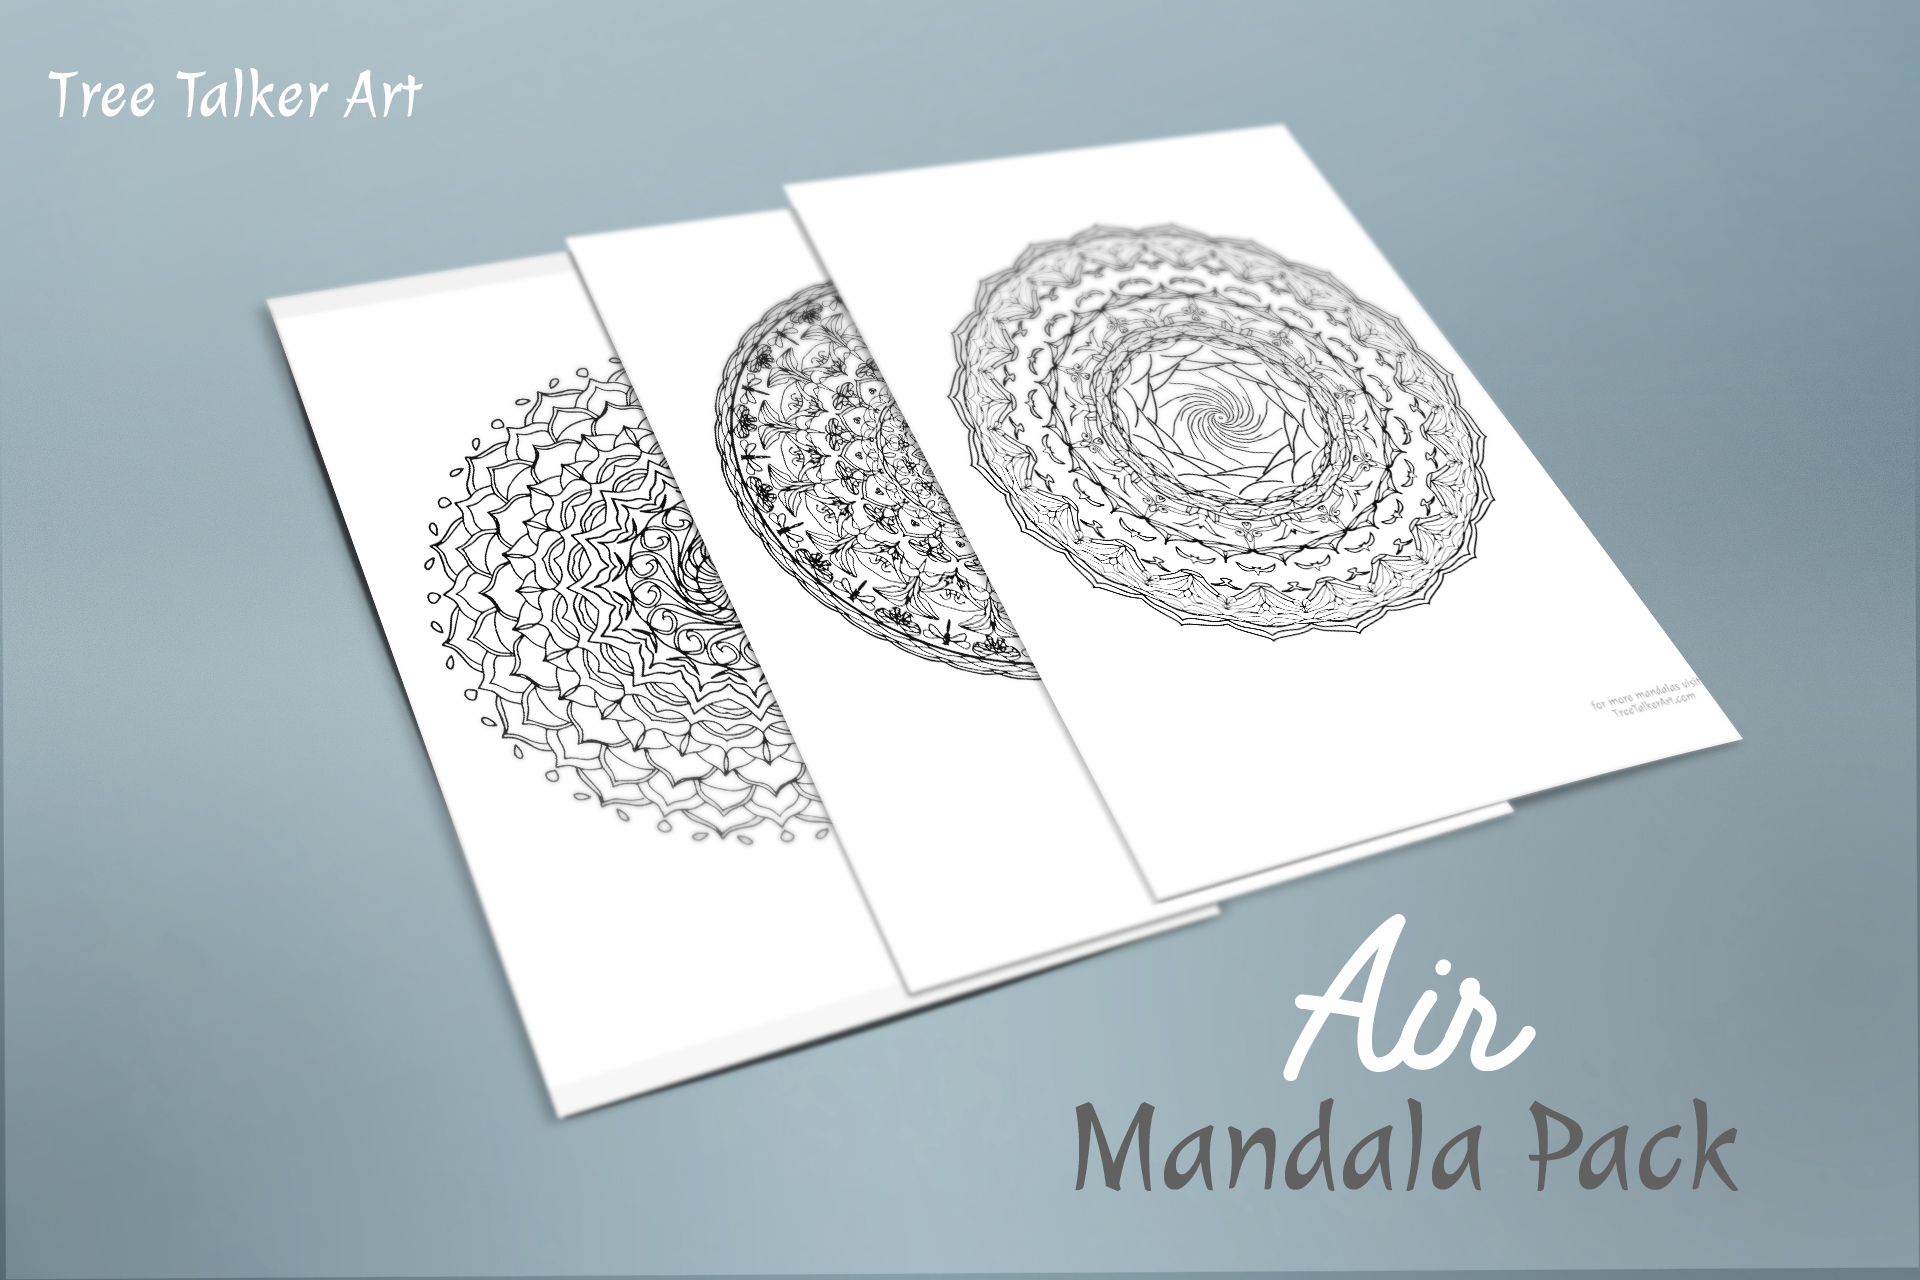 Air Downloadable Mandala Meditation Pack | Tree Talker Art